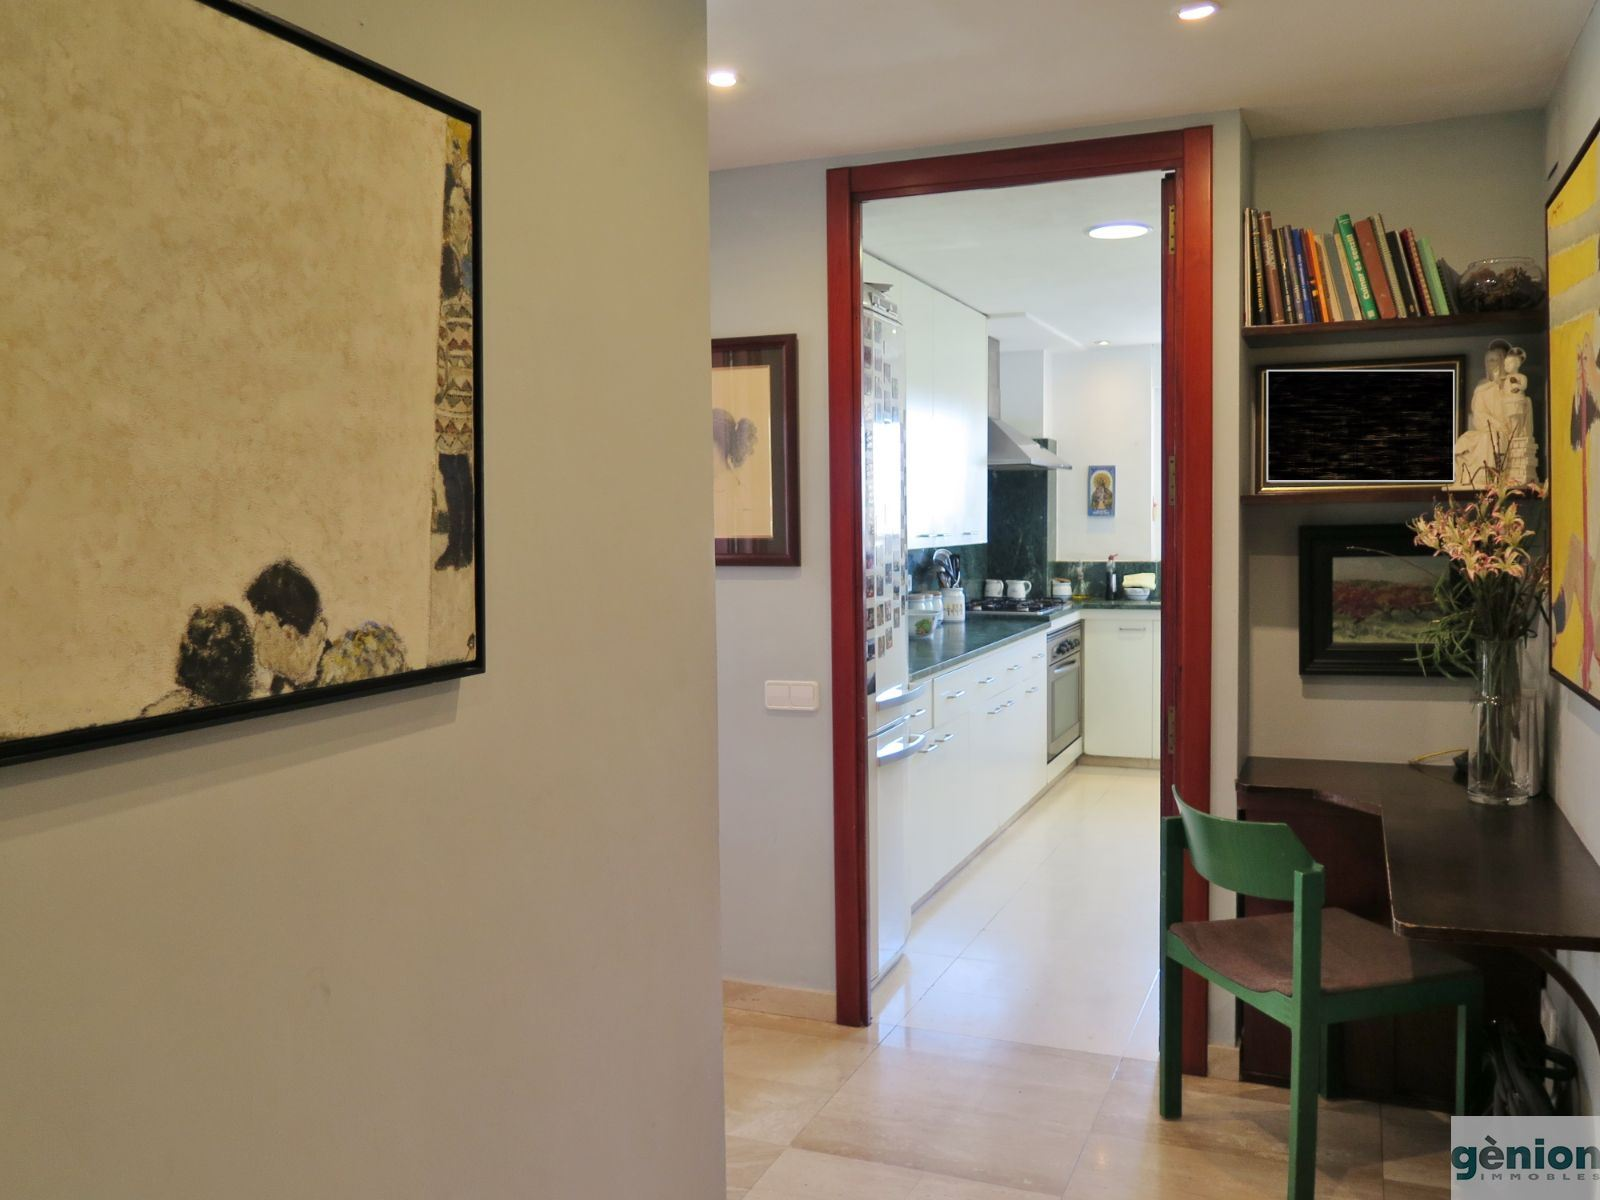 170 m2 TOP-FLOOR CORNER APARTMENT WITH 4 LARGE BEDROOMS, IN GIRONA'S EIXAMPLE DISTRICT